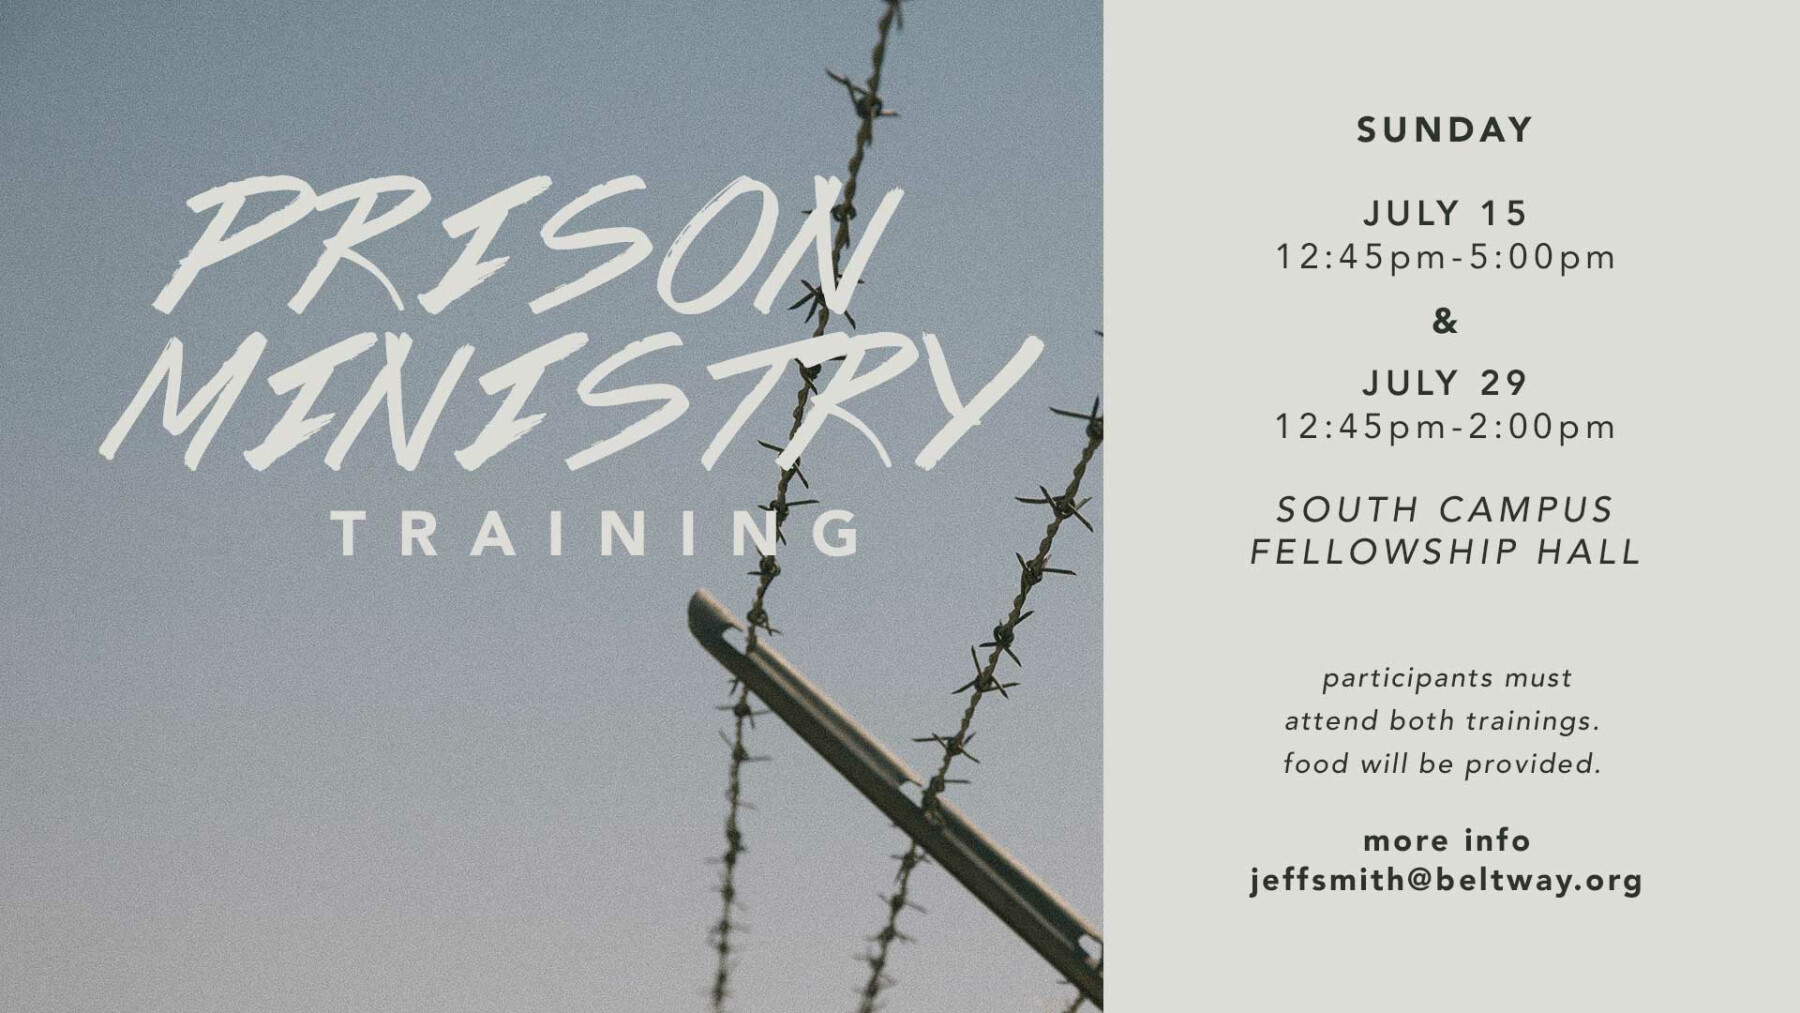 Prison Ministry Training (part 1)